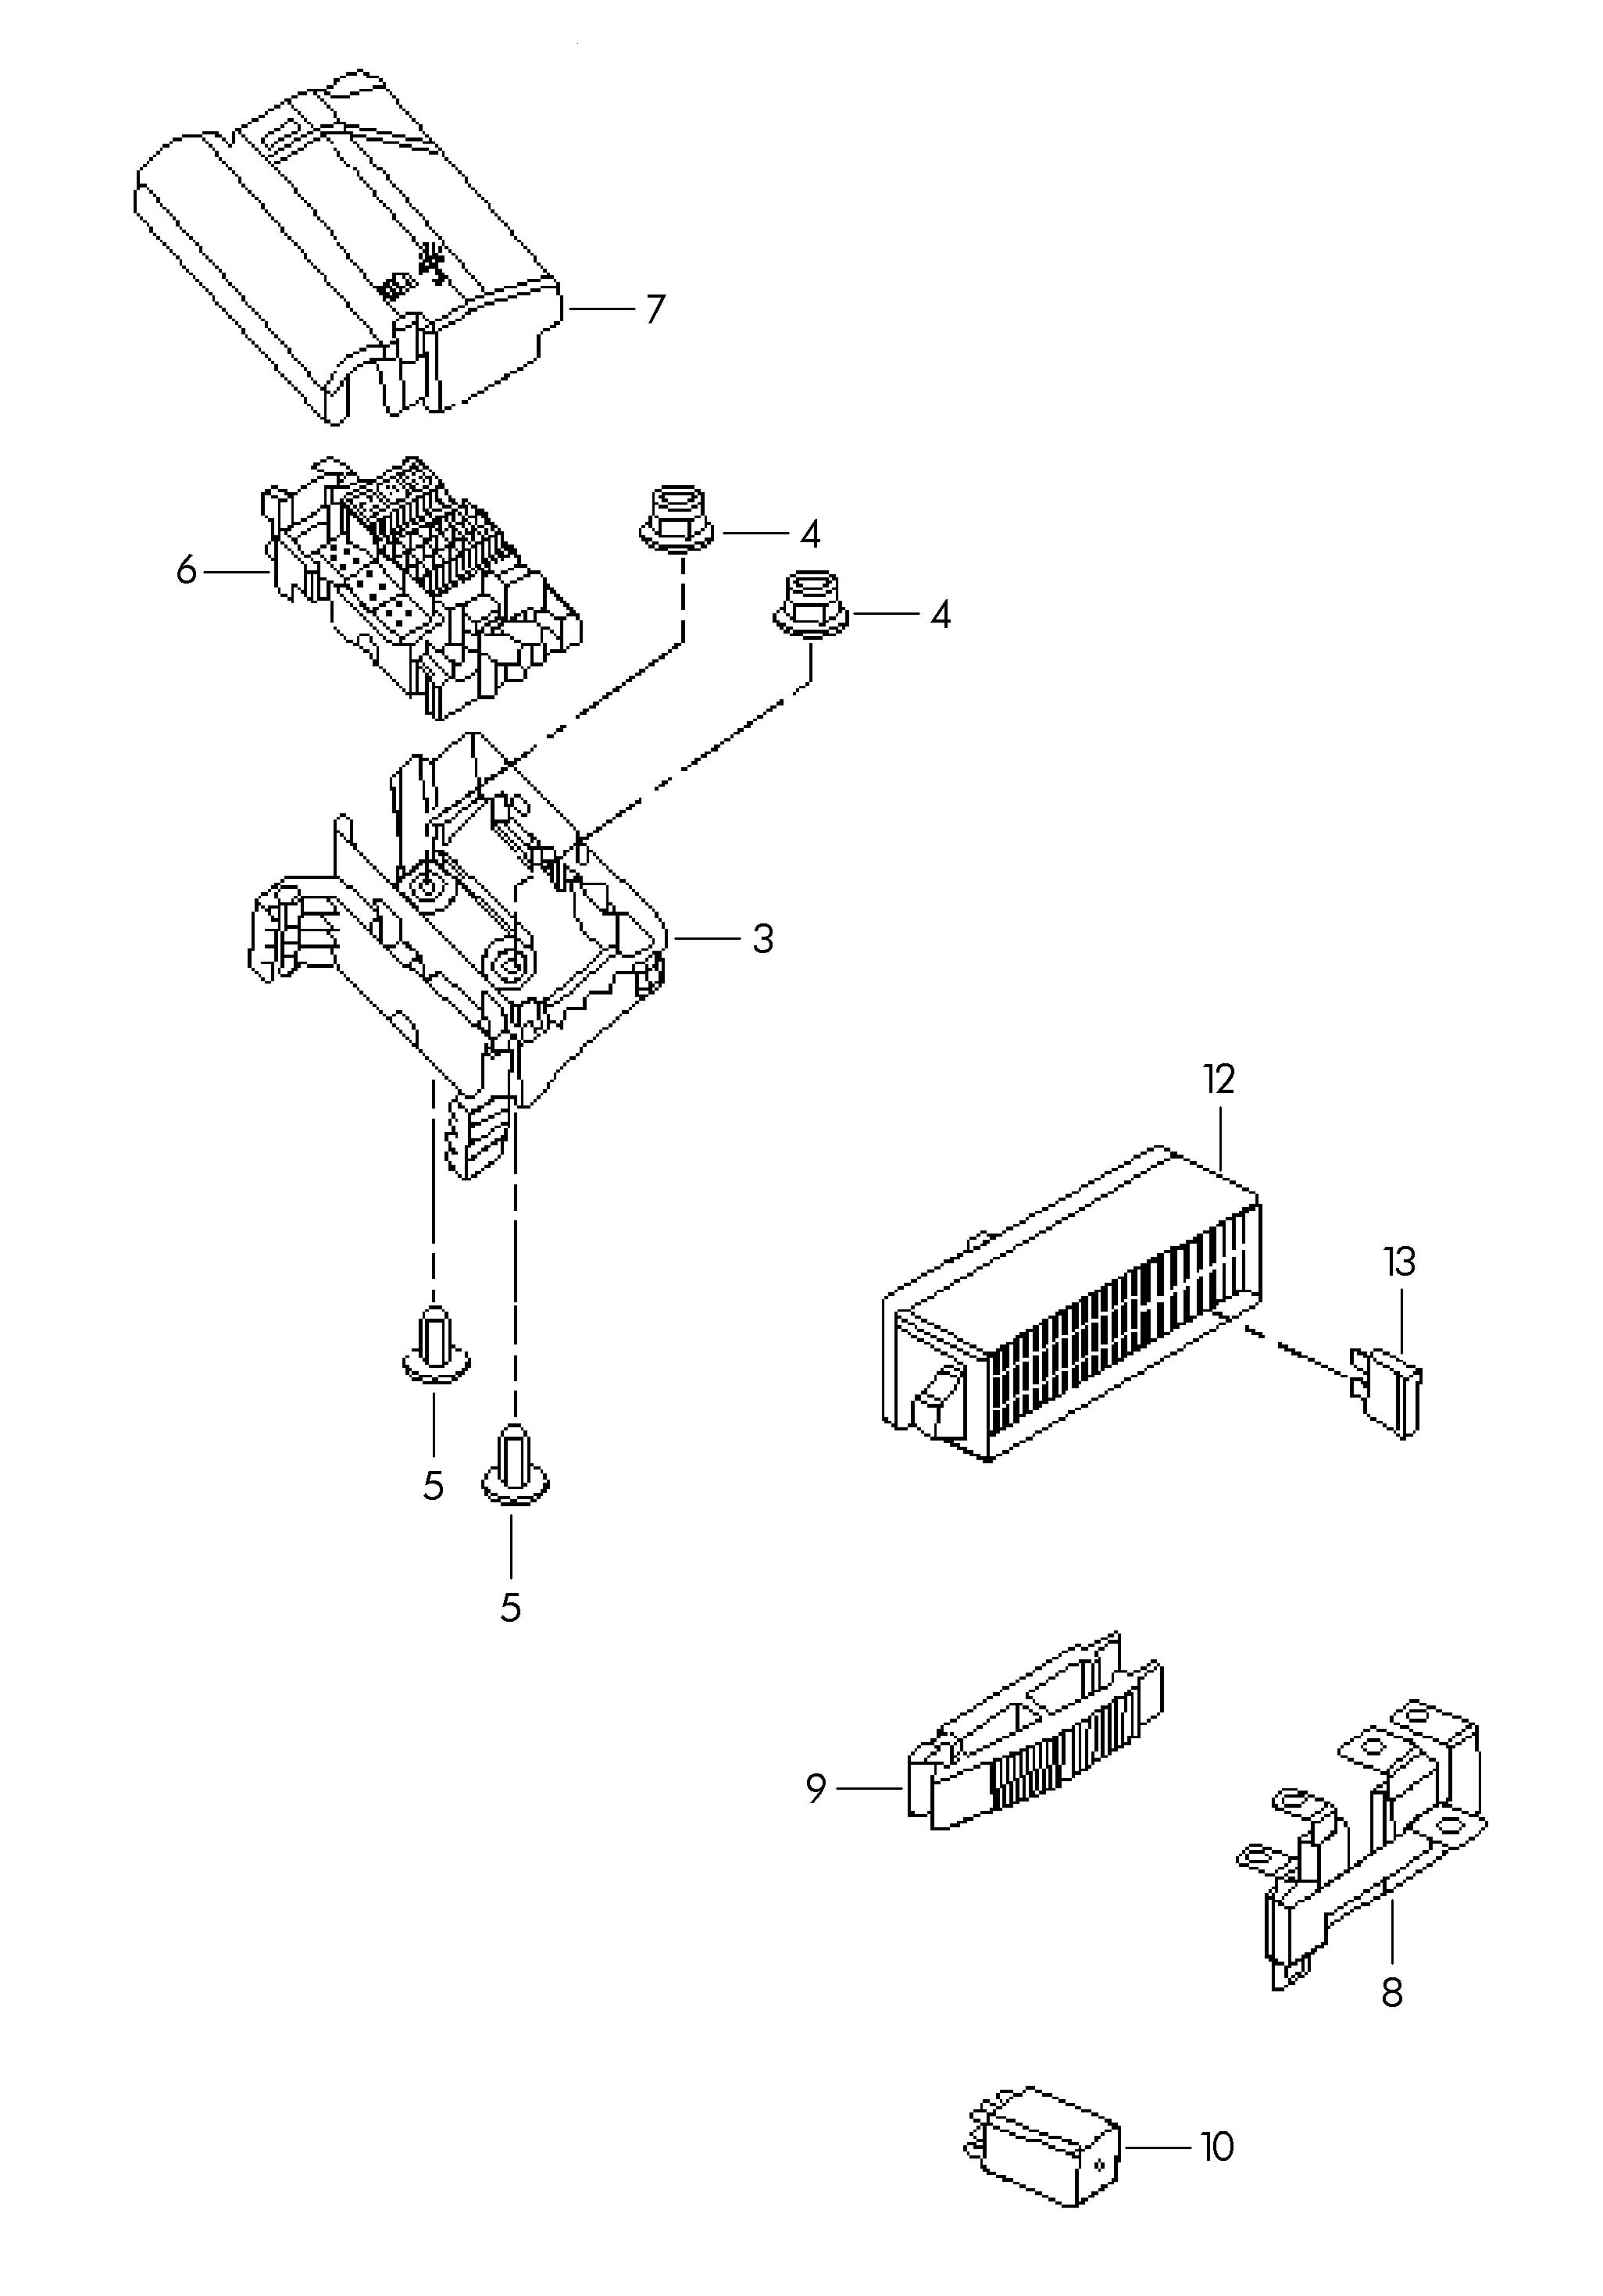 2009 Volkswagen Routan Fuse Diagram Html moreover Vw Routan Fuse Box Diagram moreover Geo Car Motor together with Volkswagen Jetta Fuse Box Diagram Wiring Schematic as well Tiguan 2013 Fuse Box Diagram. on volkswagen routan fuse box